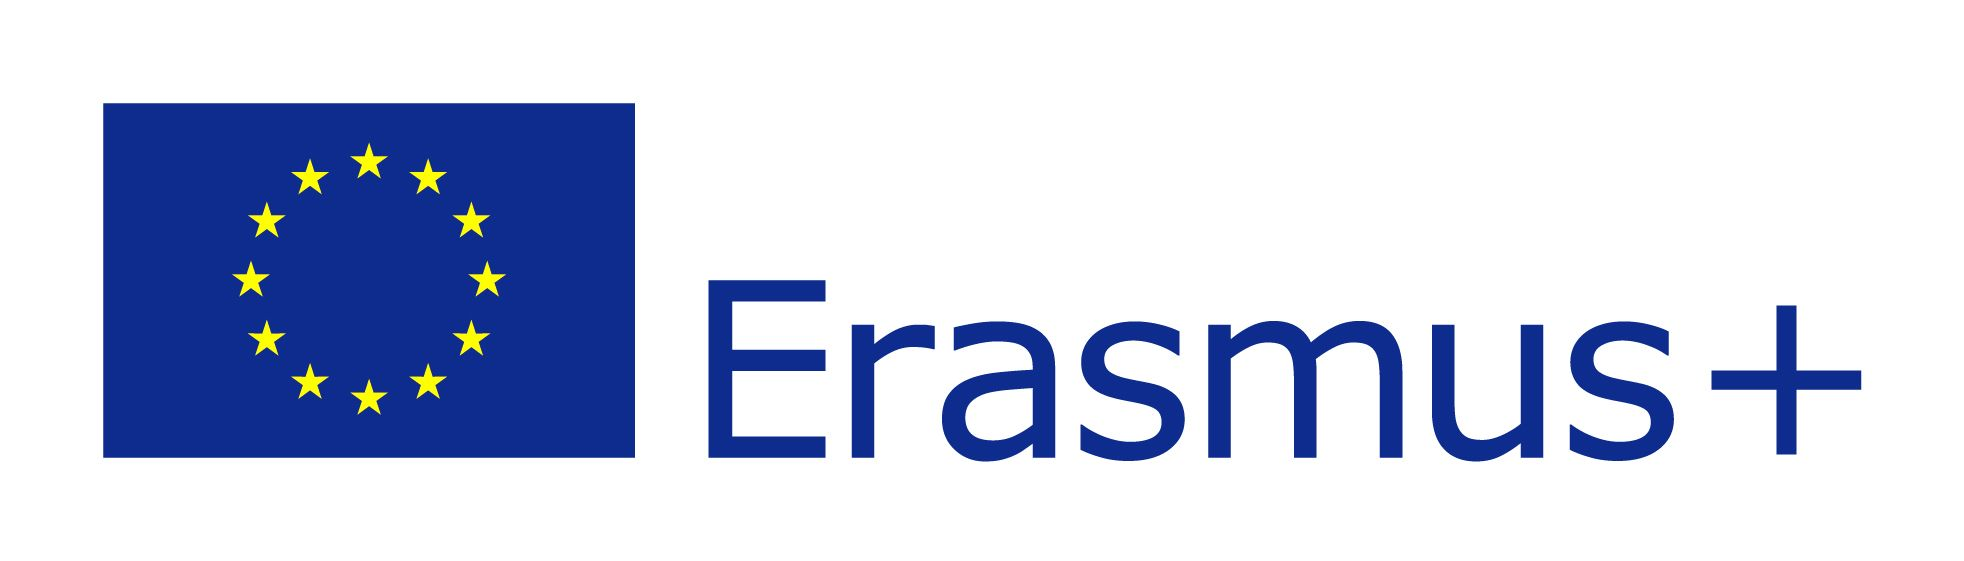 ERASMUS+ STUDENT'S APPLICATION FORM on application to be my boyfriend, application error, application meaning in science, application database diagram, application service provider, application to join a club, application approved, application for rental, application to rent california, application clip art, application trial, application cartoon, application template, application for scholarship sample, application submitted, application for employment, application in spanish, application to join motorcycle club, application insights, application to date my son,